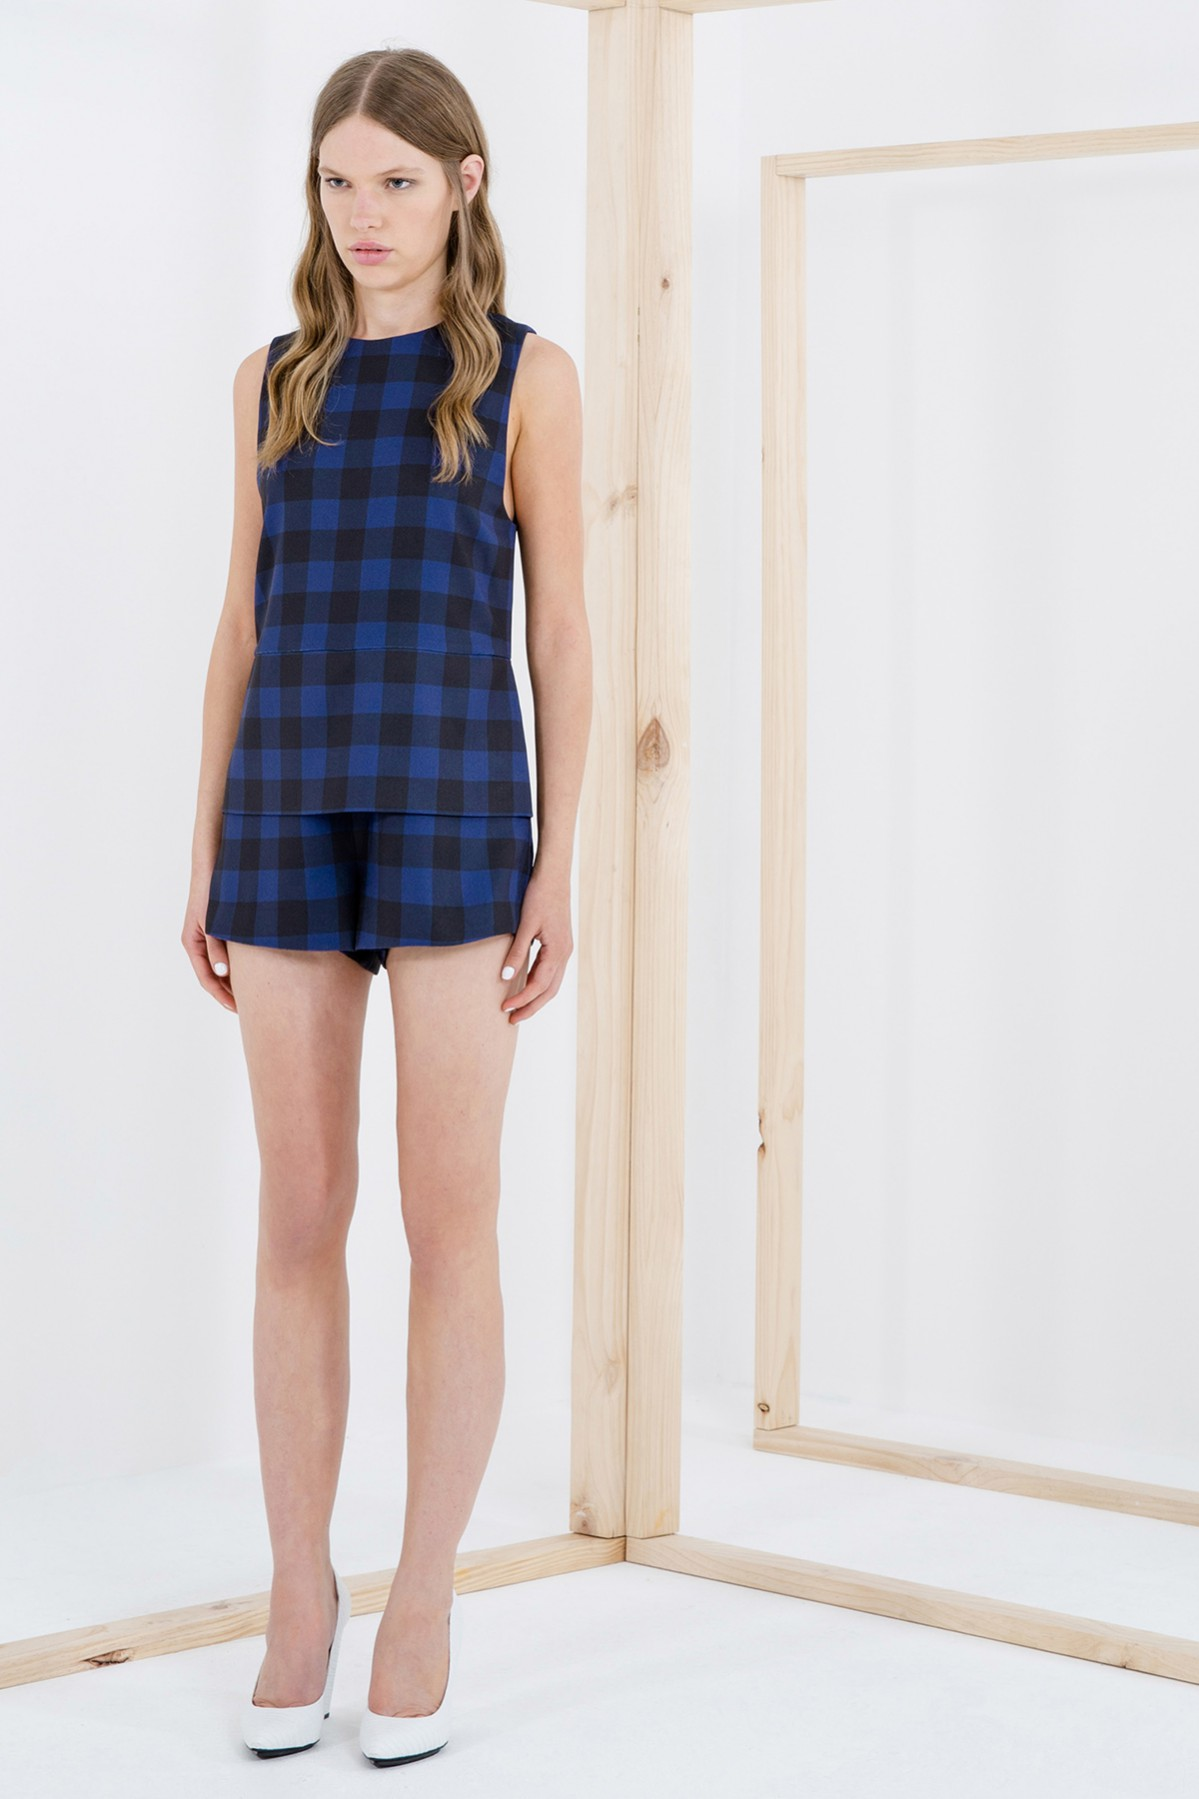 Lucid Dreams Playsuit By Finders Keepers the Label- $159.95